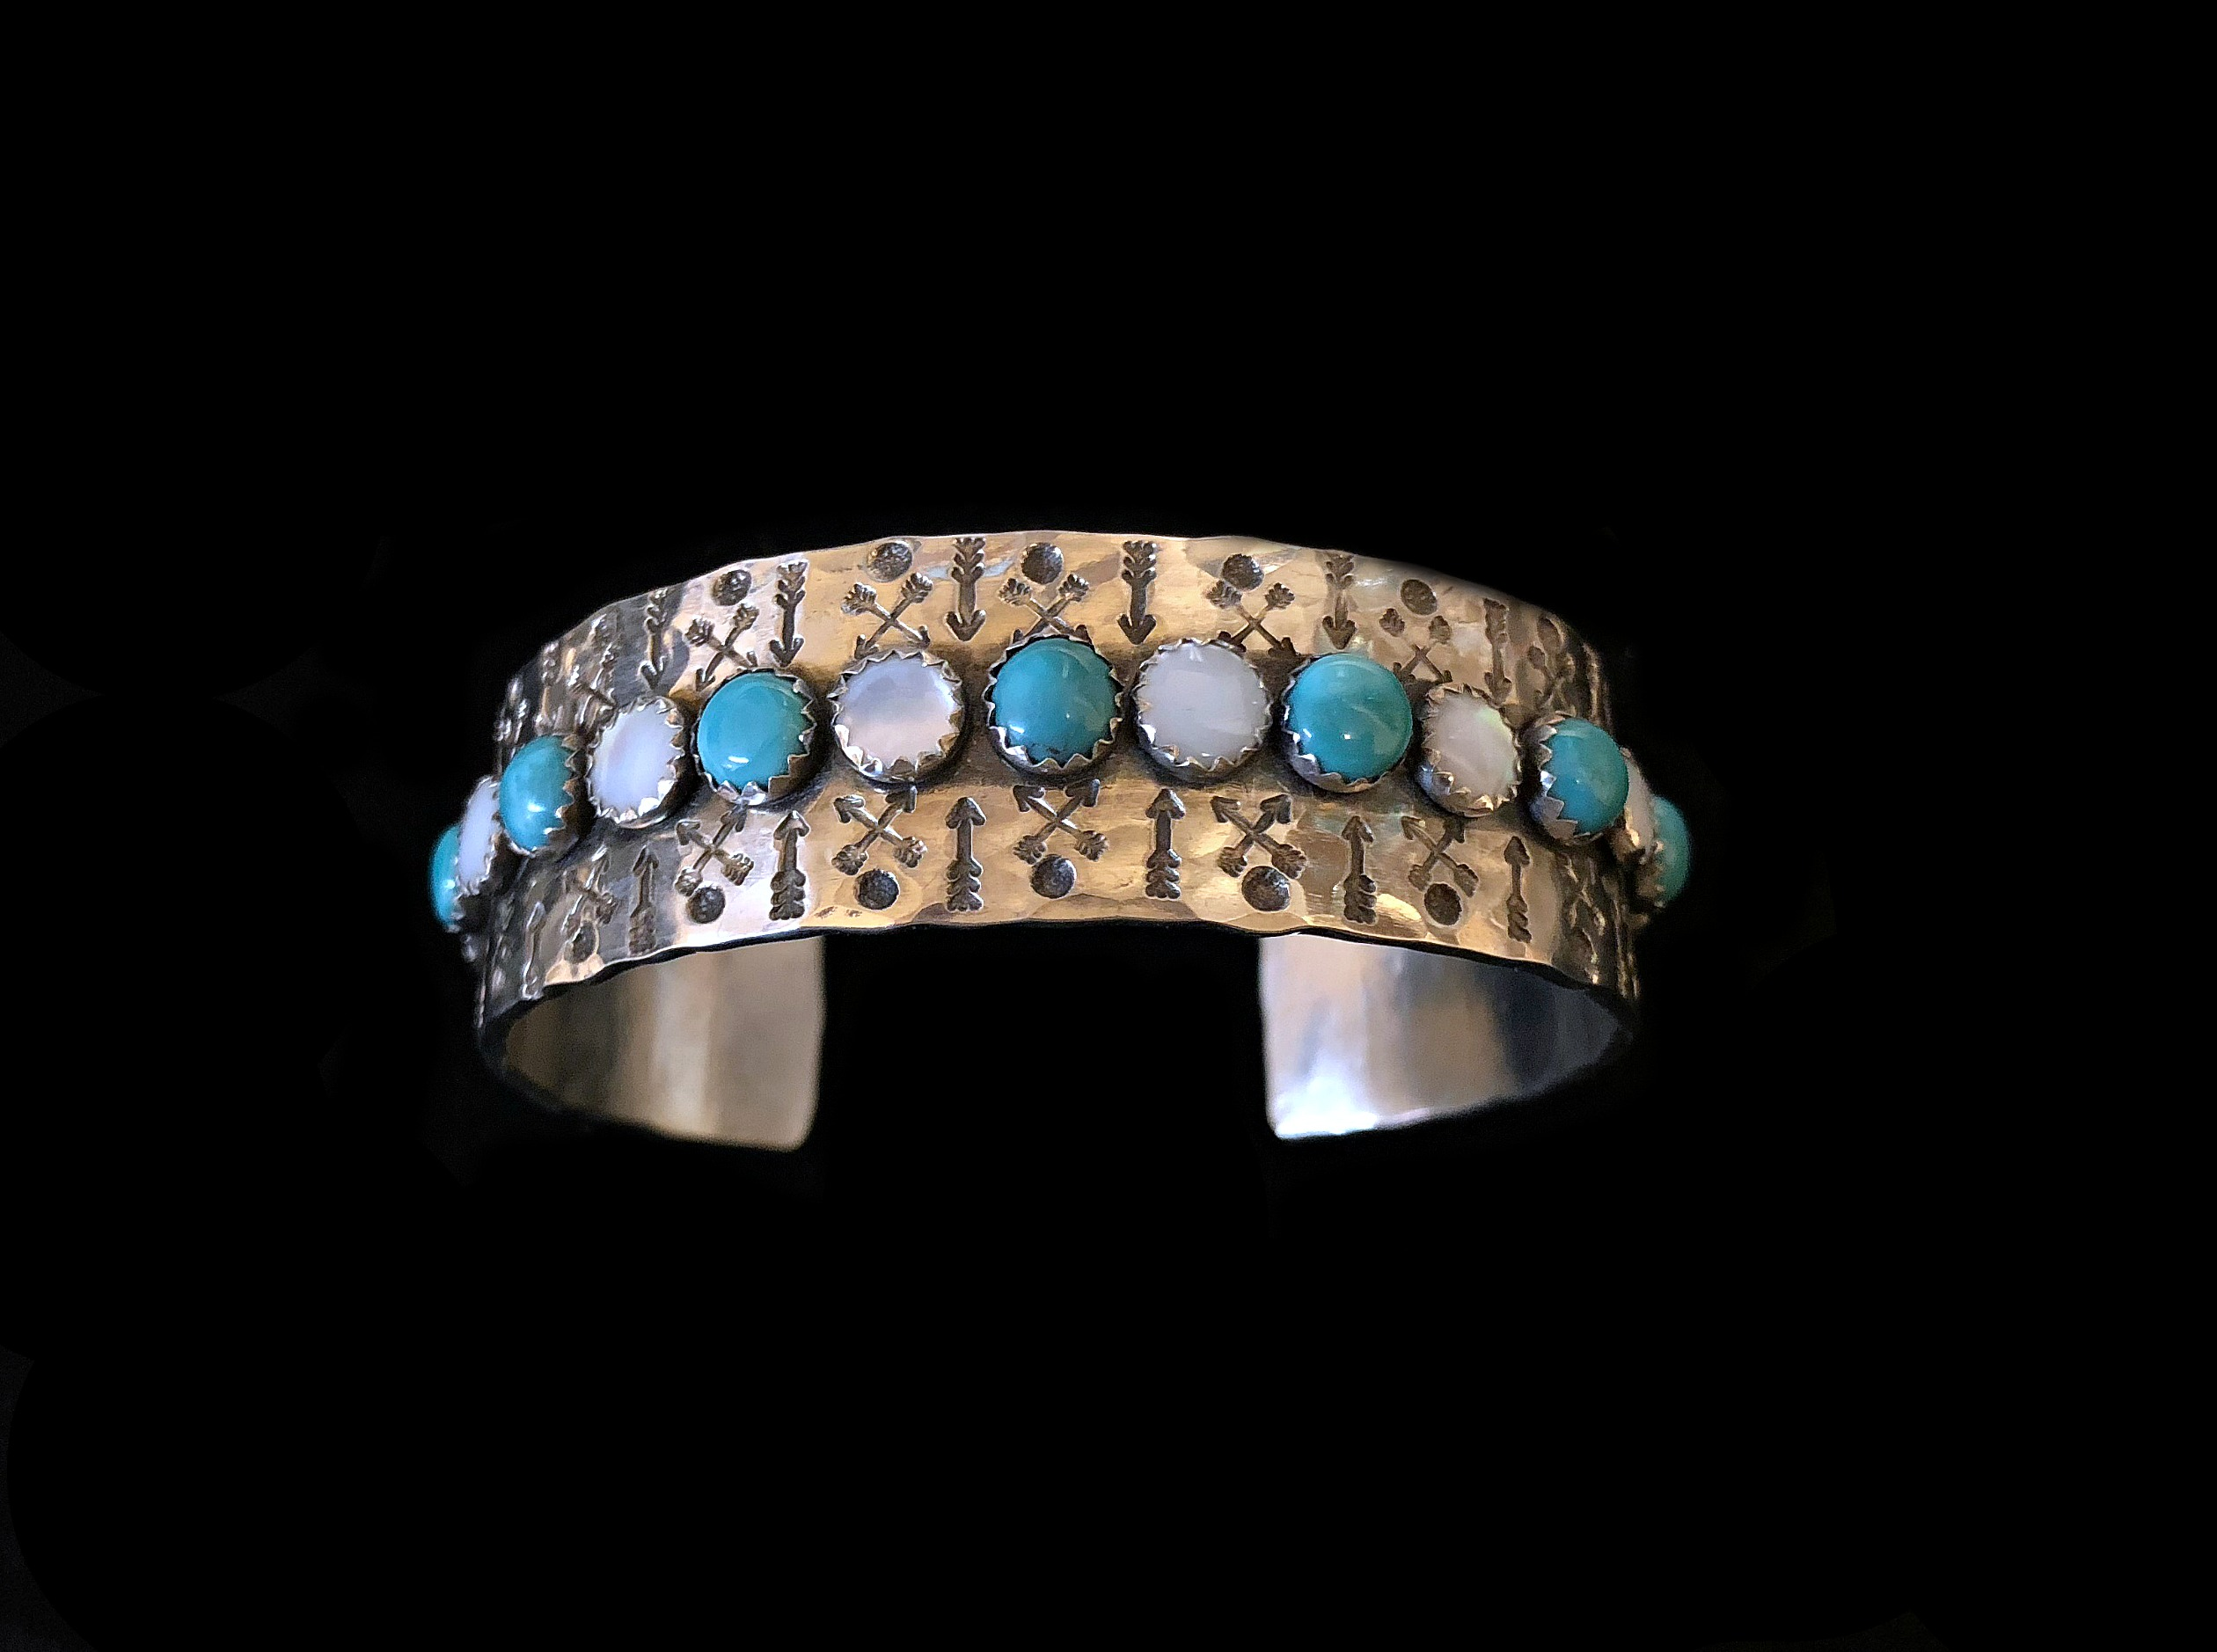 Turquoise & Mother of Pearl